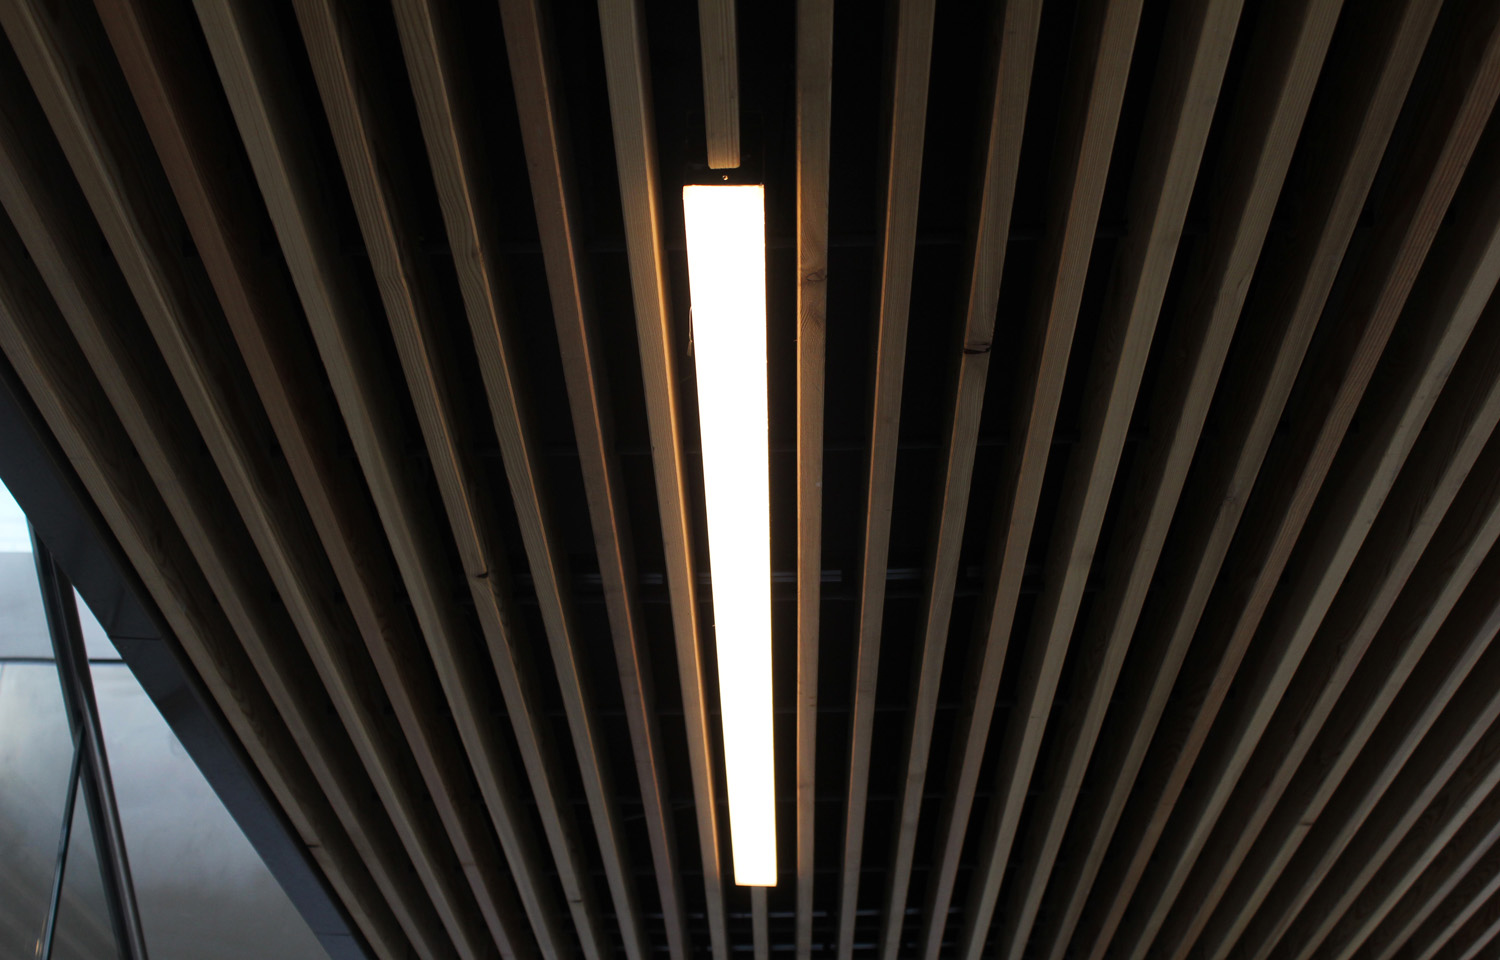 bespoke lighting broadgate circle lightlab 3